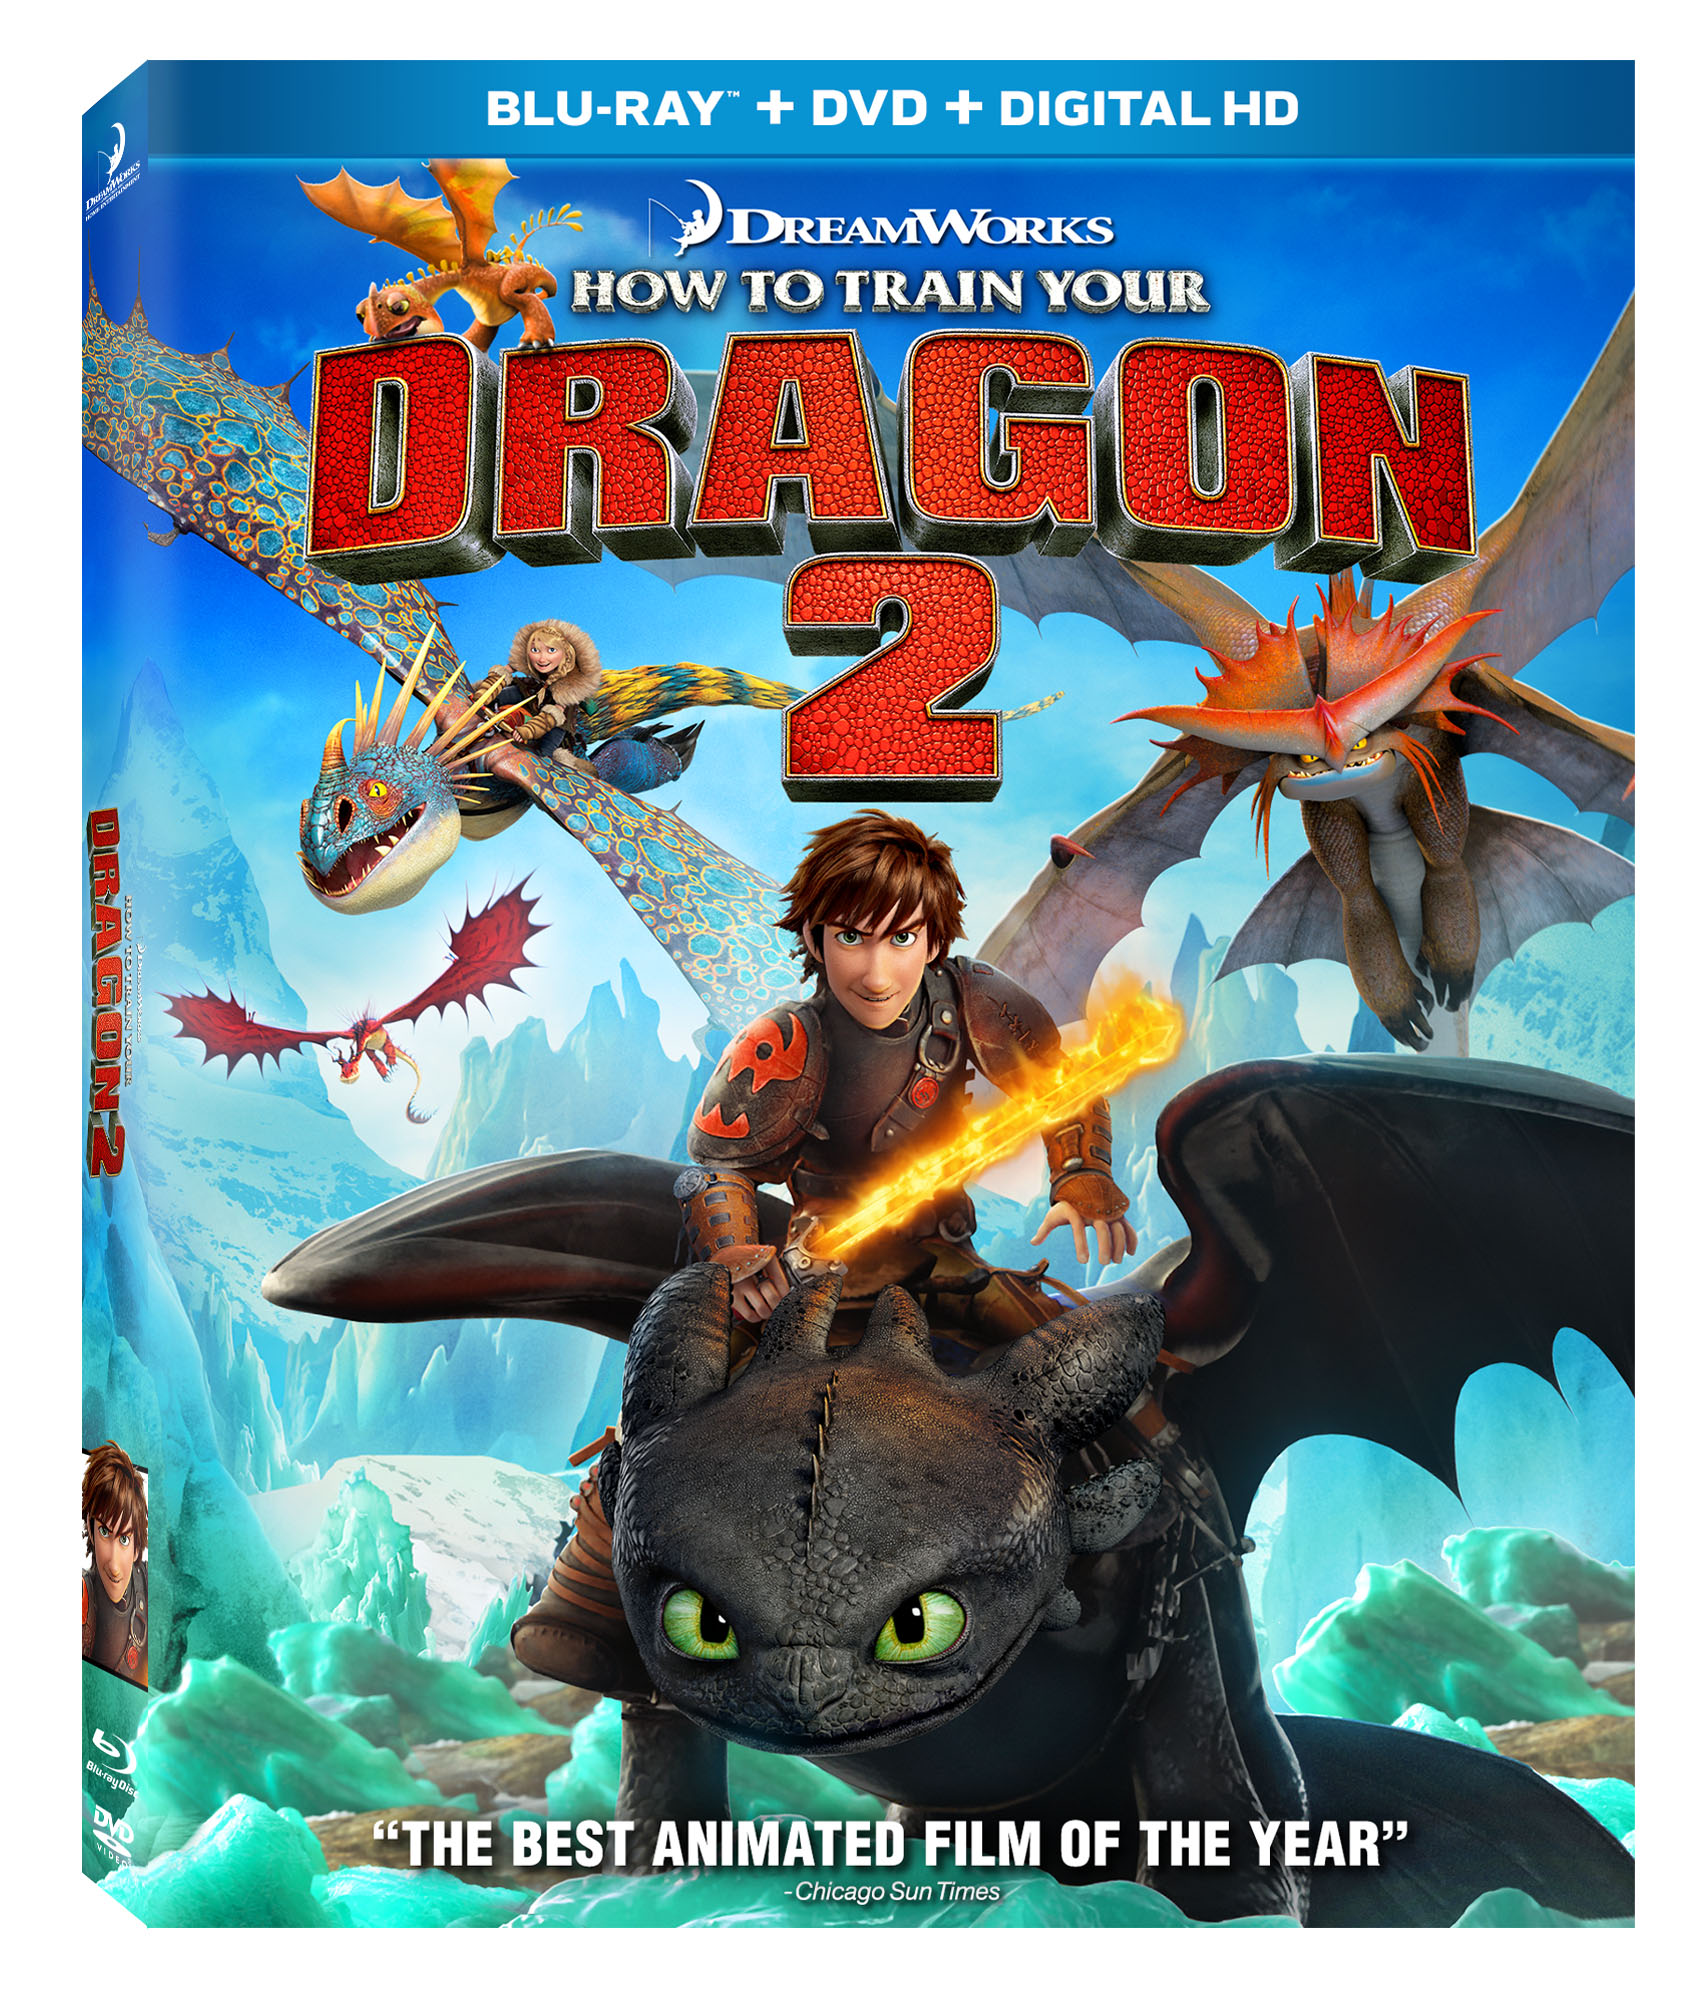 How To Train Your Dragon 2 Arrives On Digital HD Oct 21 And Blu Ray Amp DVD Nov 11